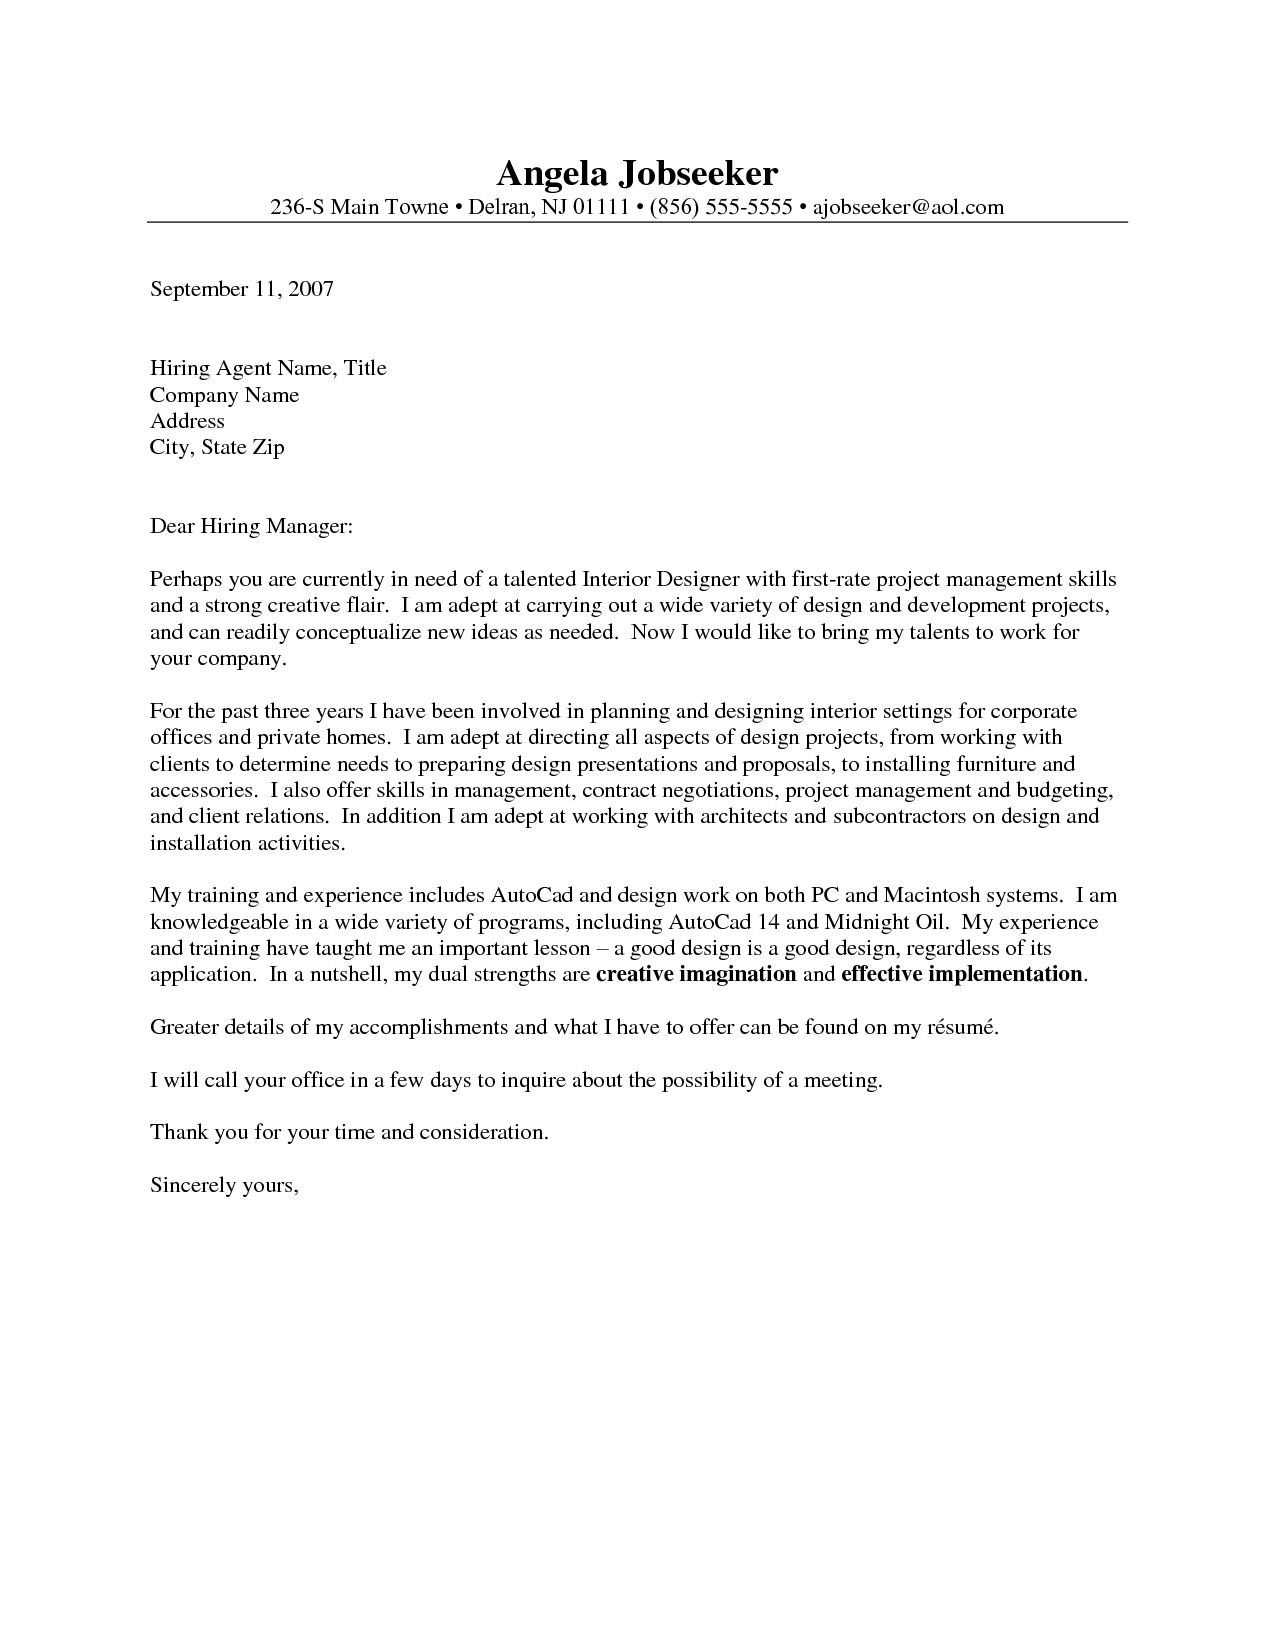 23 Cover Letter Design Image Result For Job In Interior Firm My